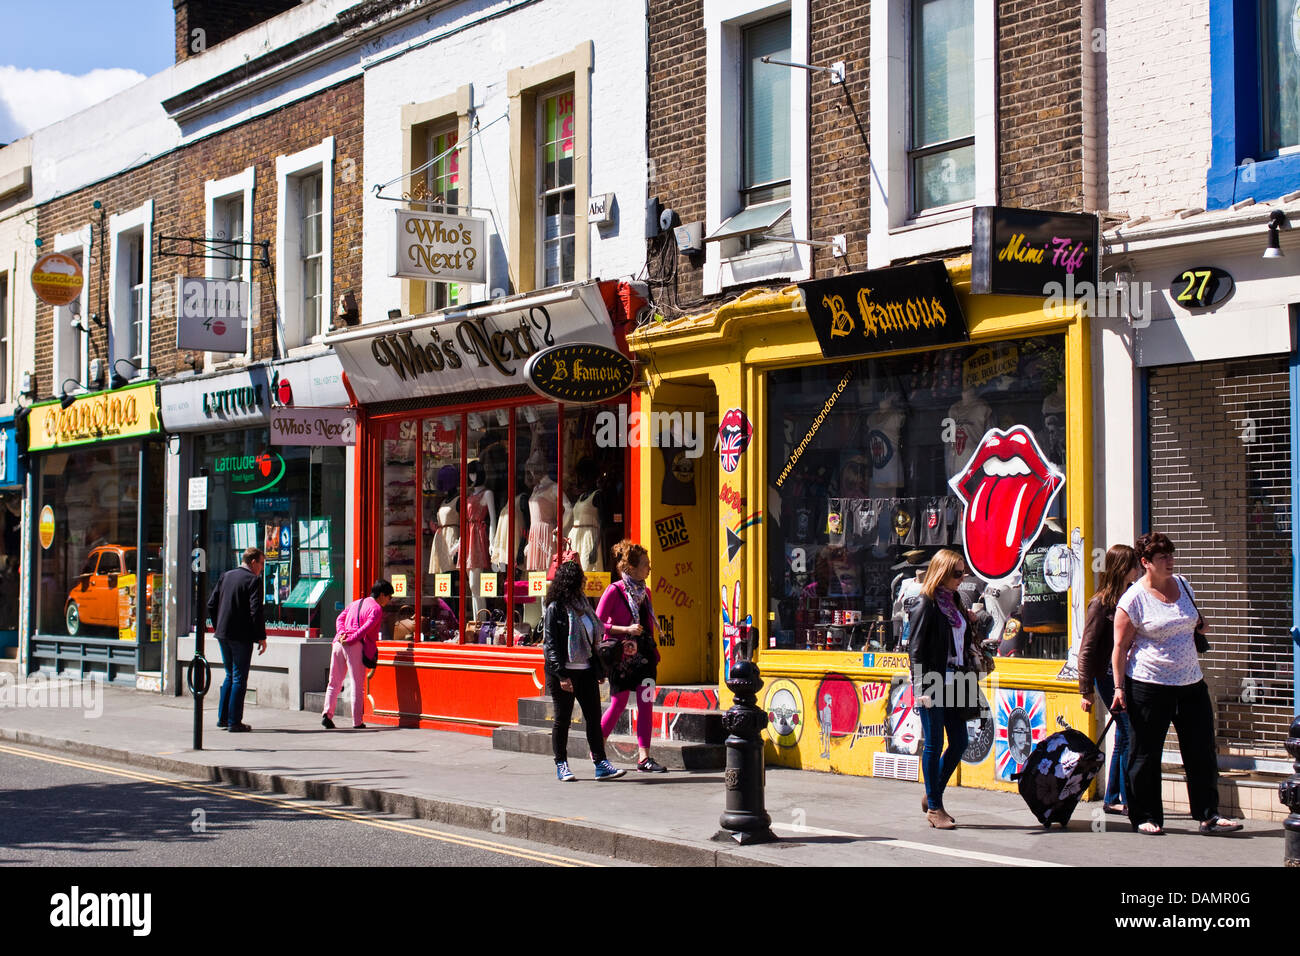 pembridge road shops near to portobello road in notting hill london stock photo royalty free. Black Bedroom Furniture Sets. Home Design Ideas